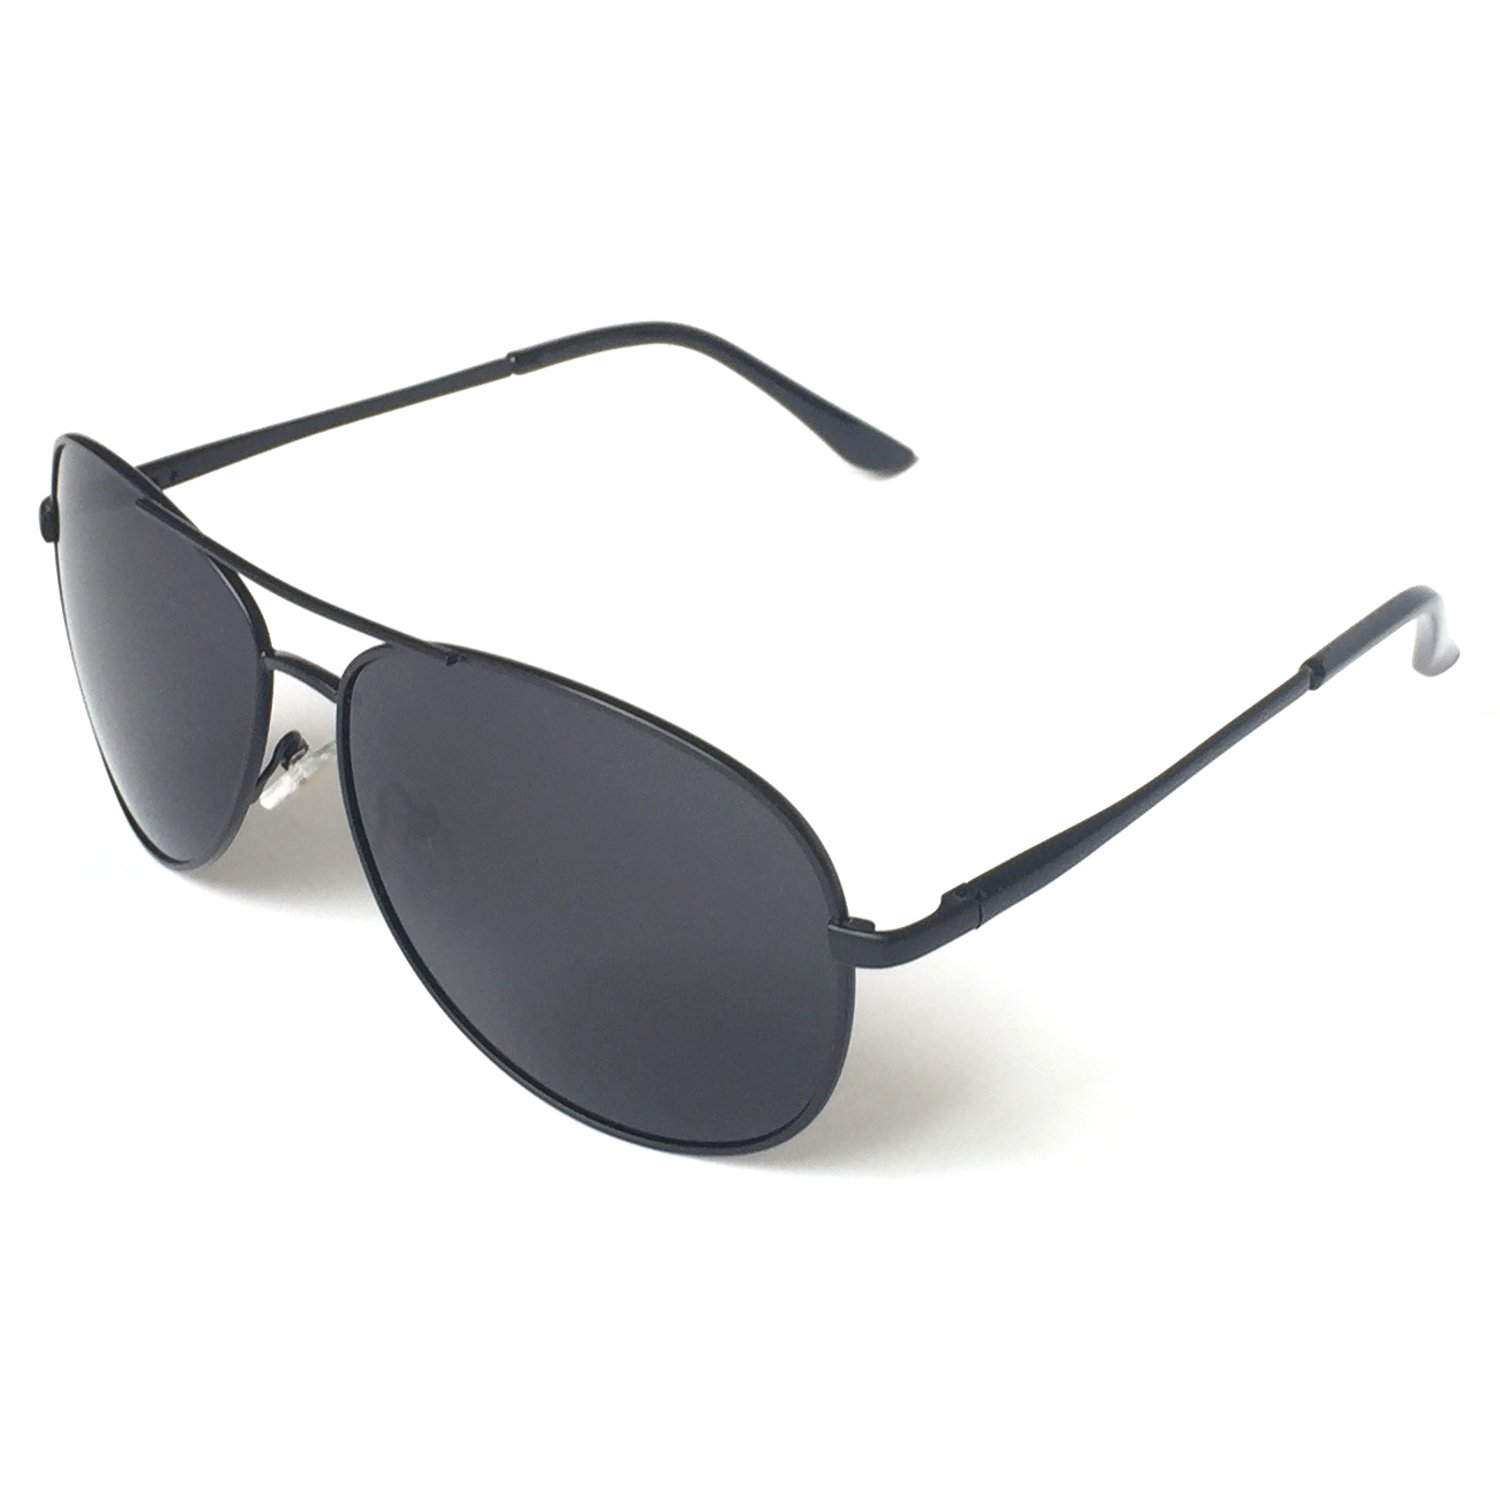 a23039f2e1748 Details about Military Style Sunglasses Classic Aviator Black Fashion  Designer UV protection